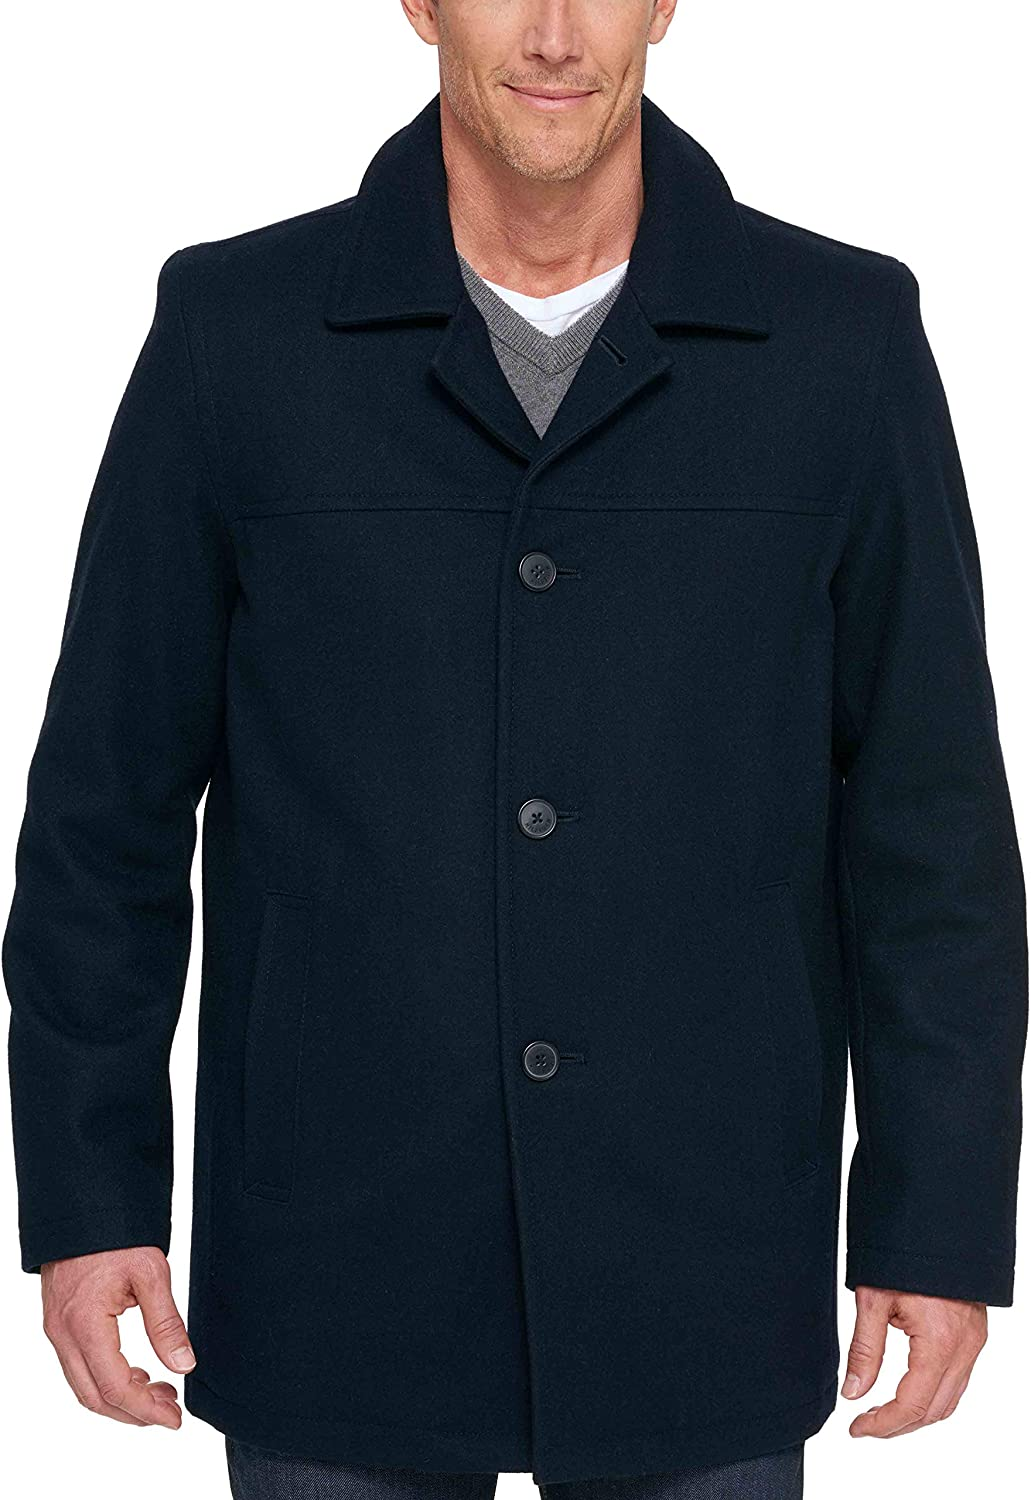 Tommy Hilfiger Mens Size Tall Wool Melton Walking Coat with Detachable Scarf